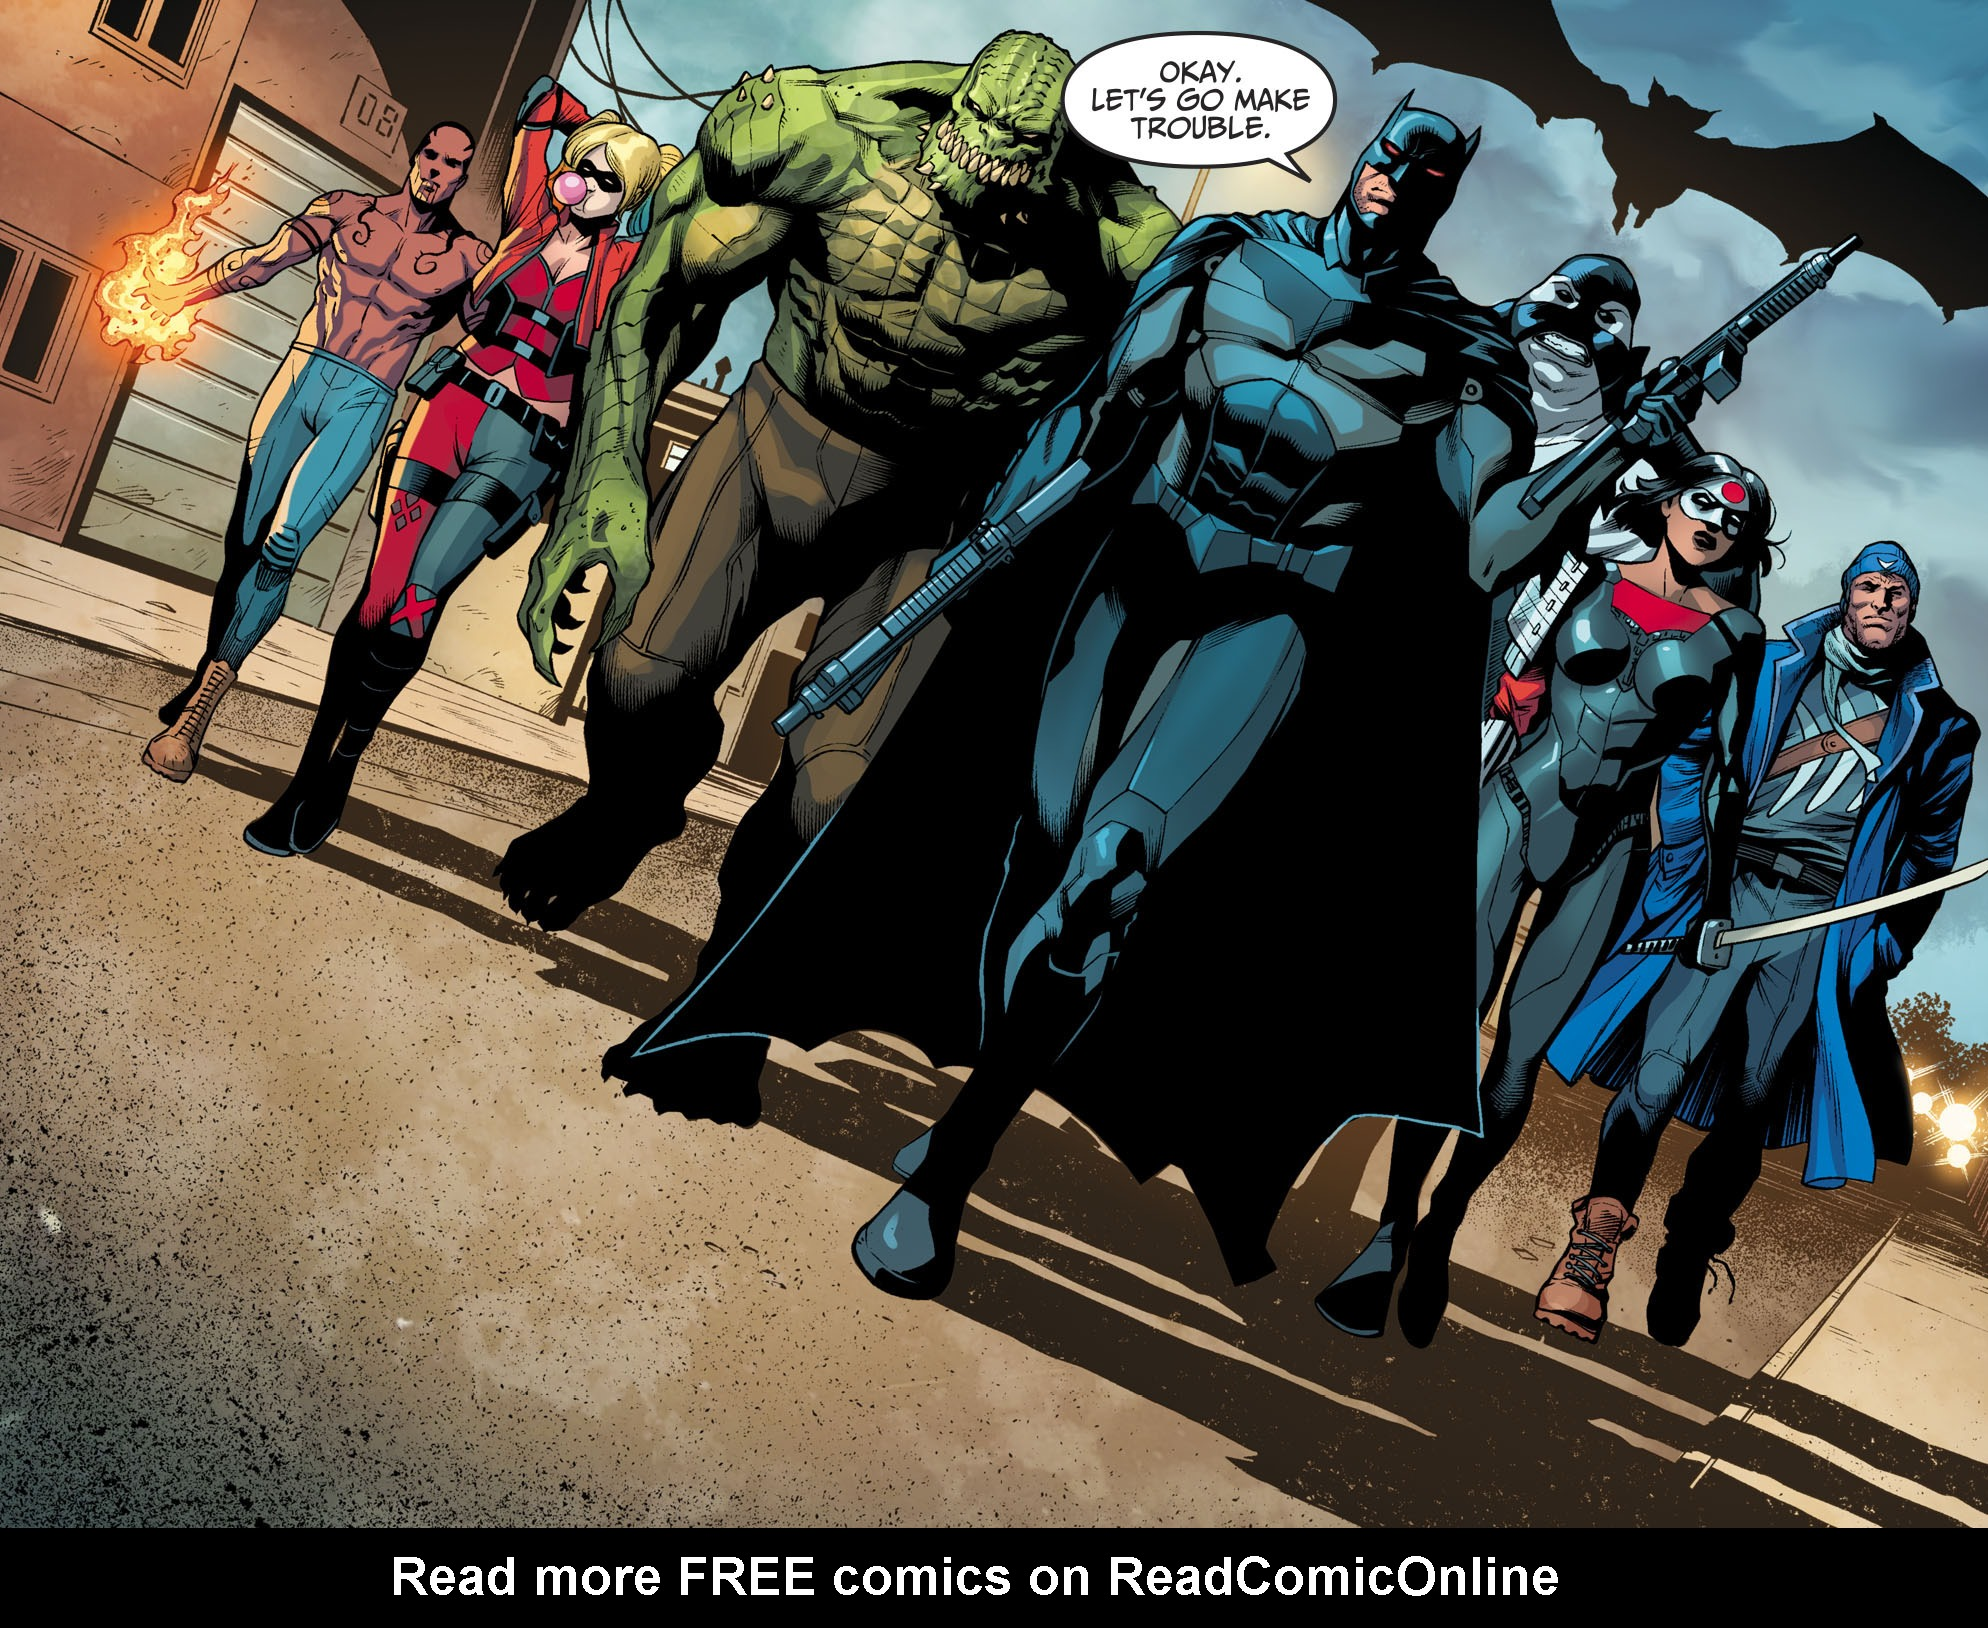 Read online Injustice 2 comic -  Issue #5 - 9